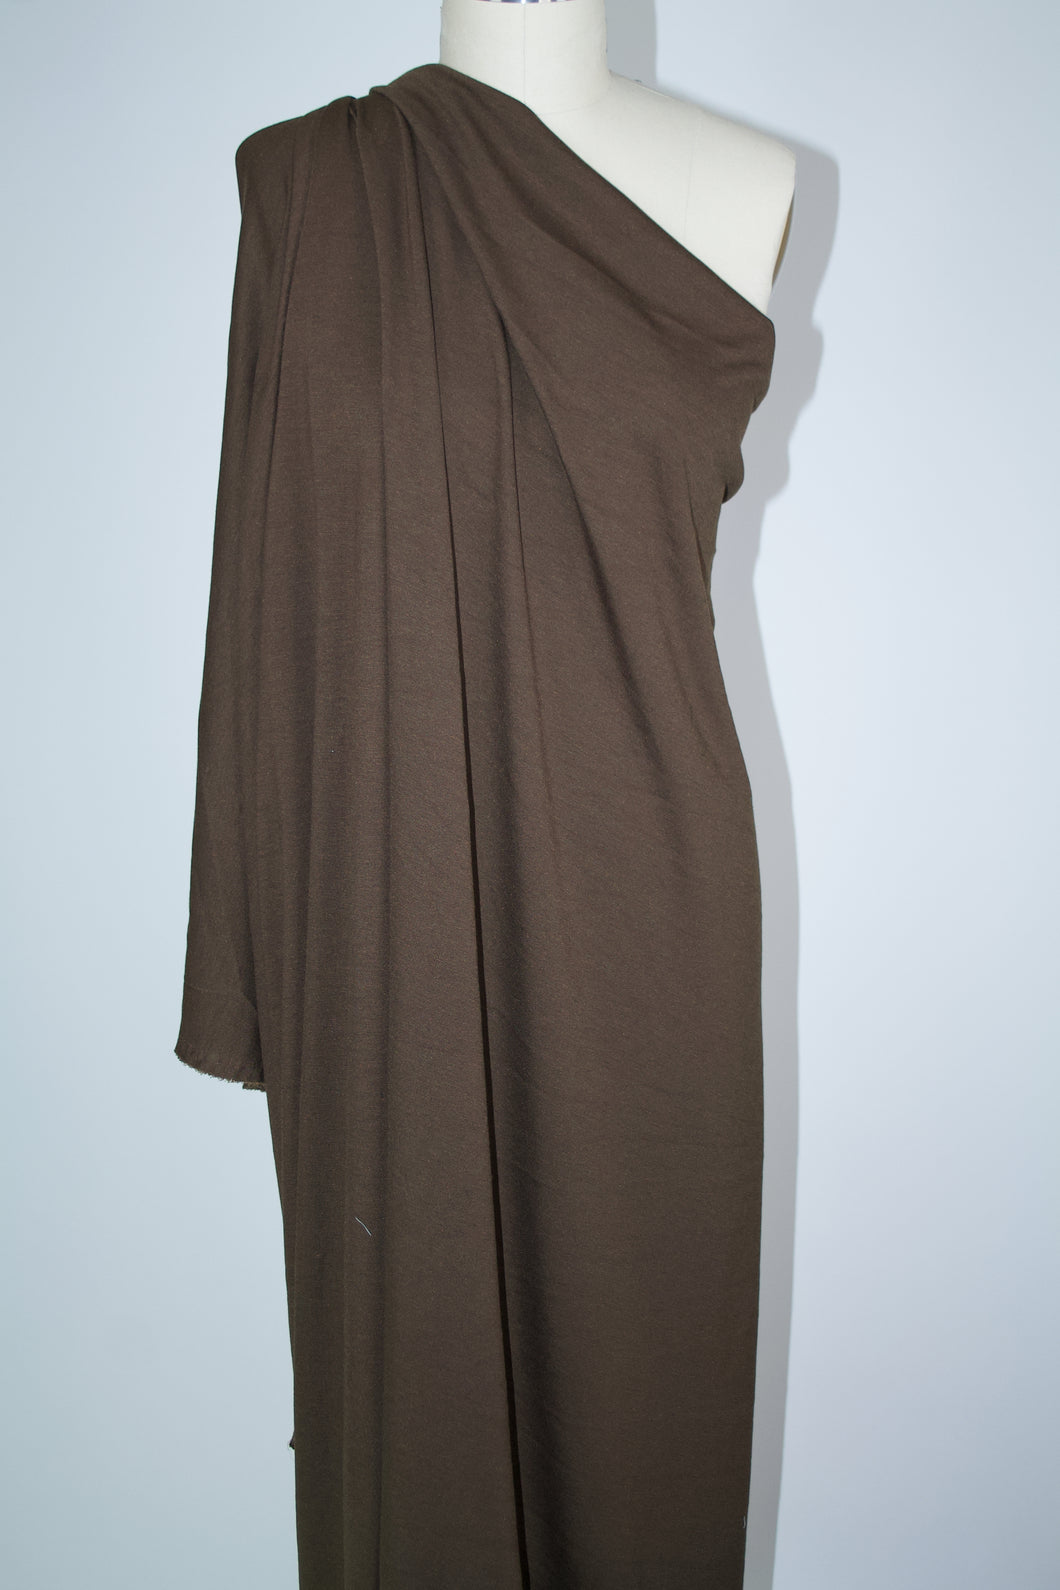 Designer Rayon Double Knit - Chocolate Brown